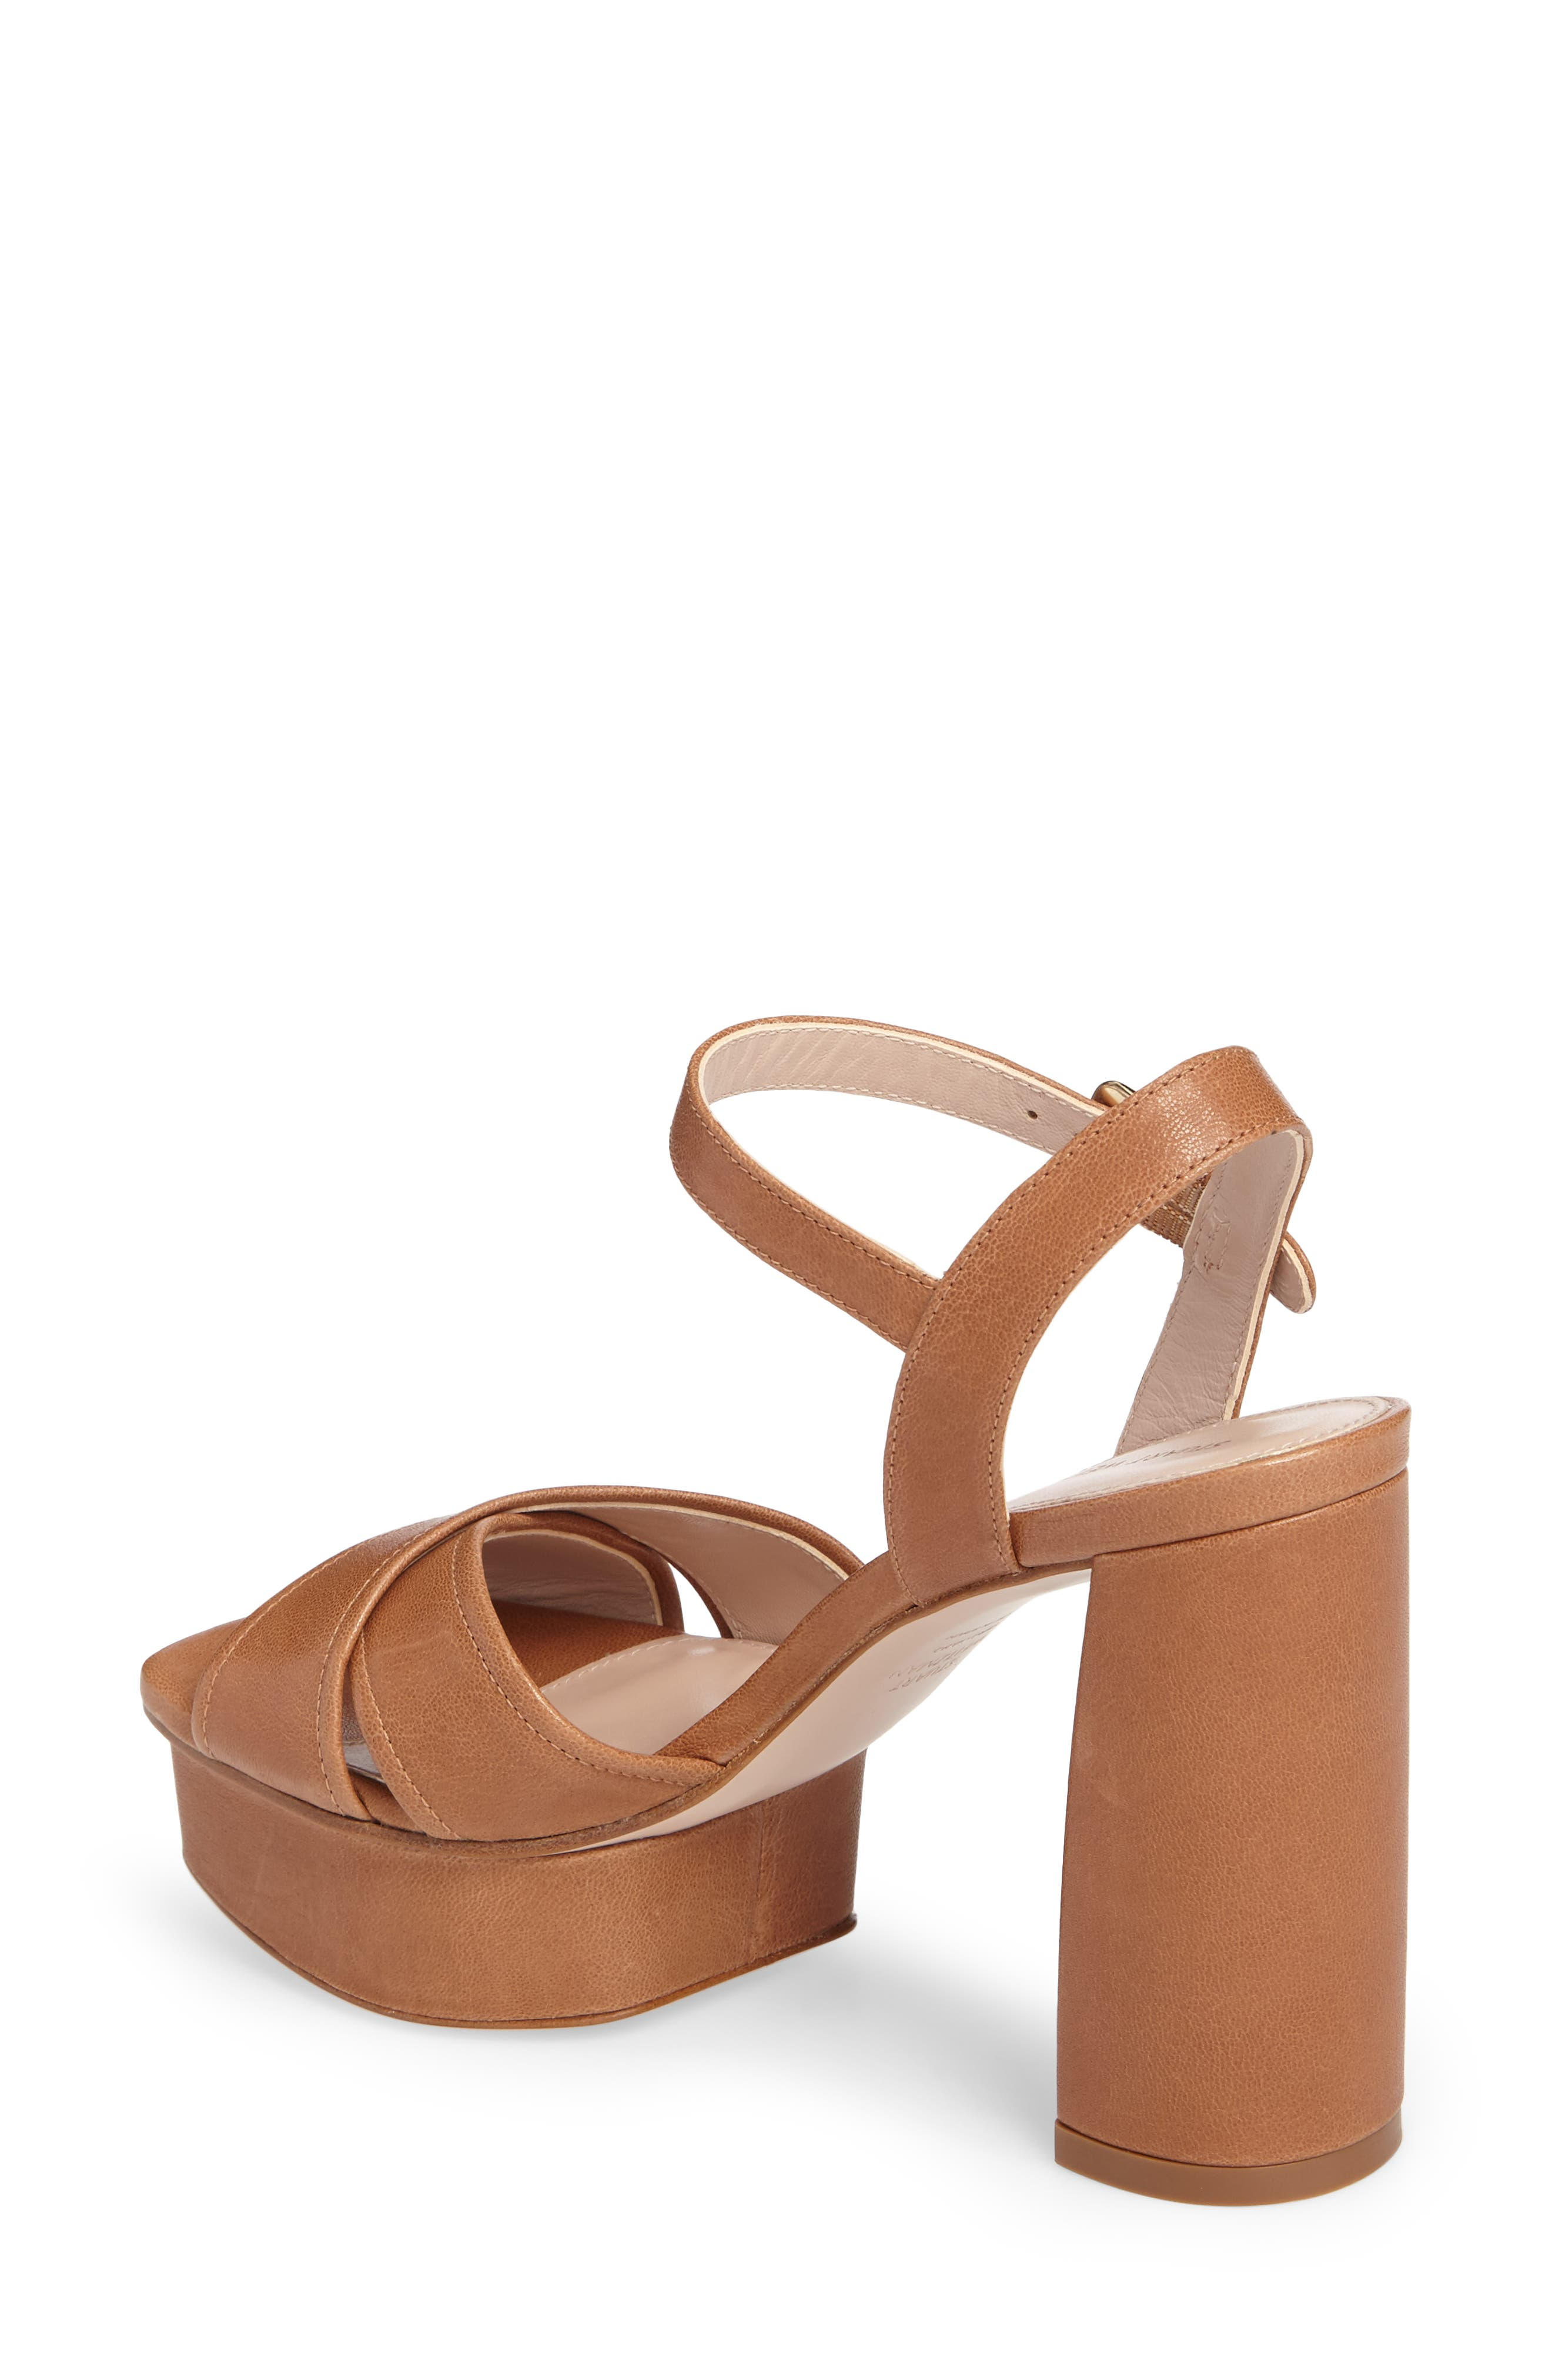 Exposed Platform Sandal,                             Alternate thumbnail 9, color,